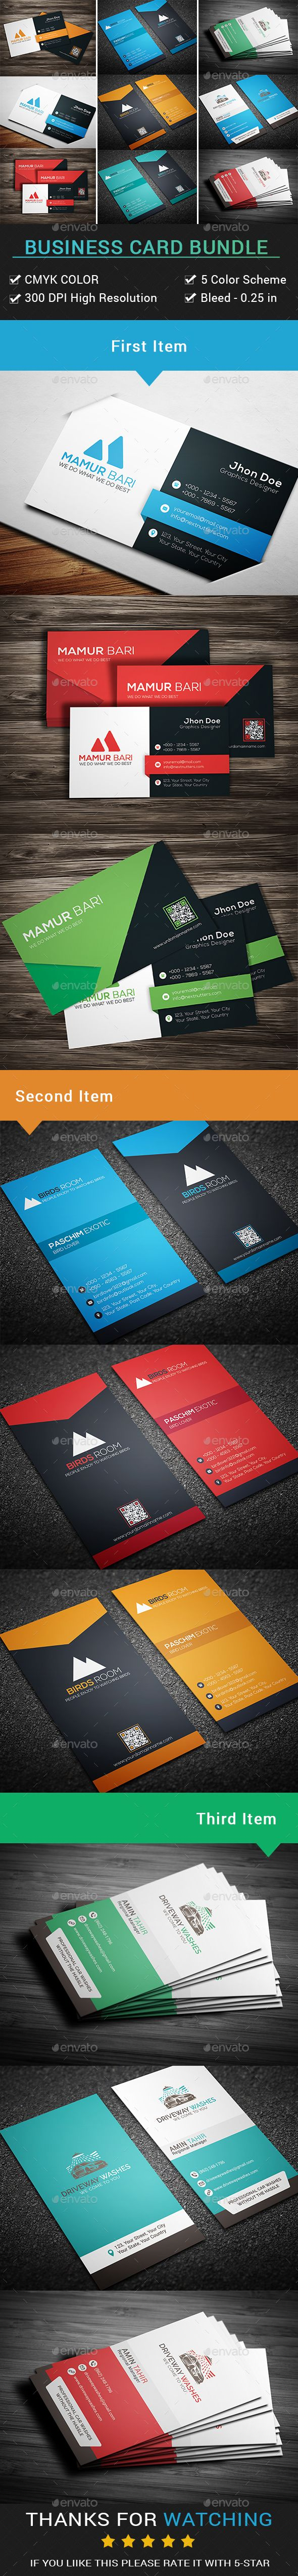 Business Card Bundle (3 in 1) | Business cards, Business and Print ...